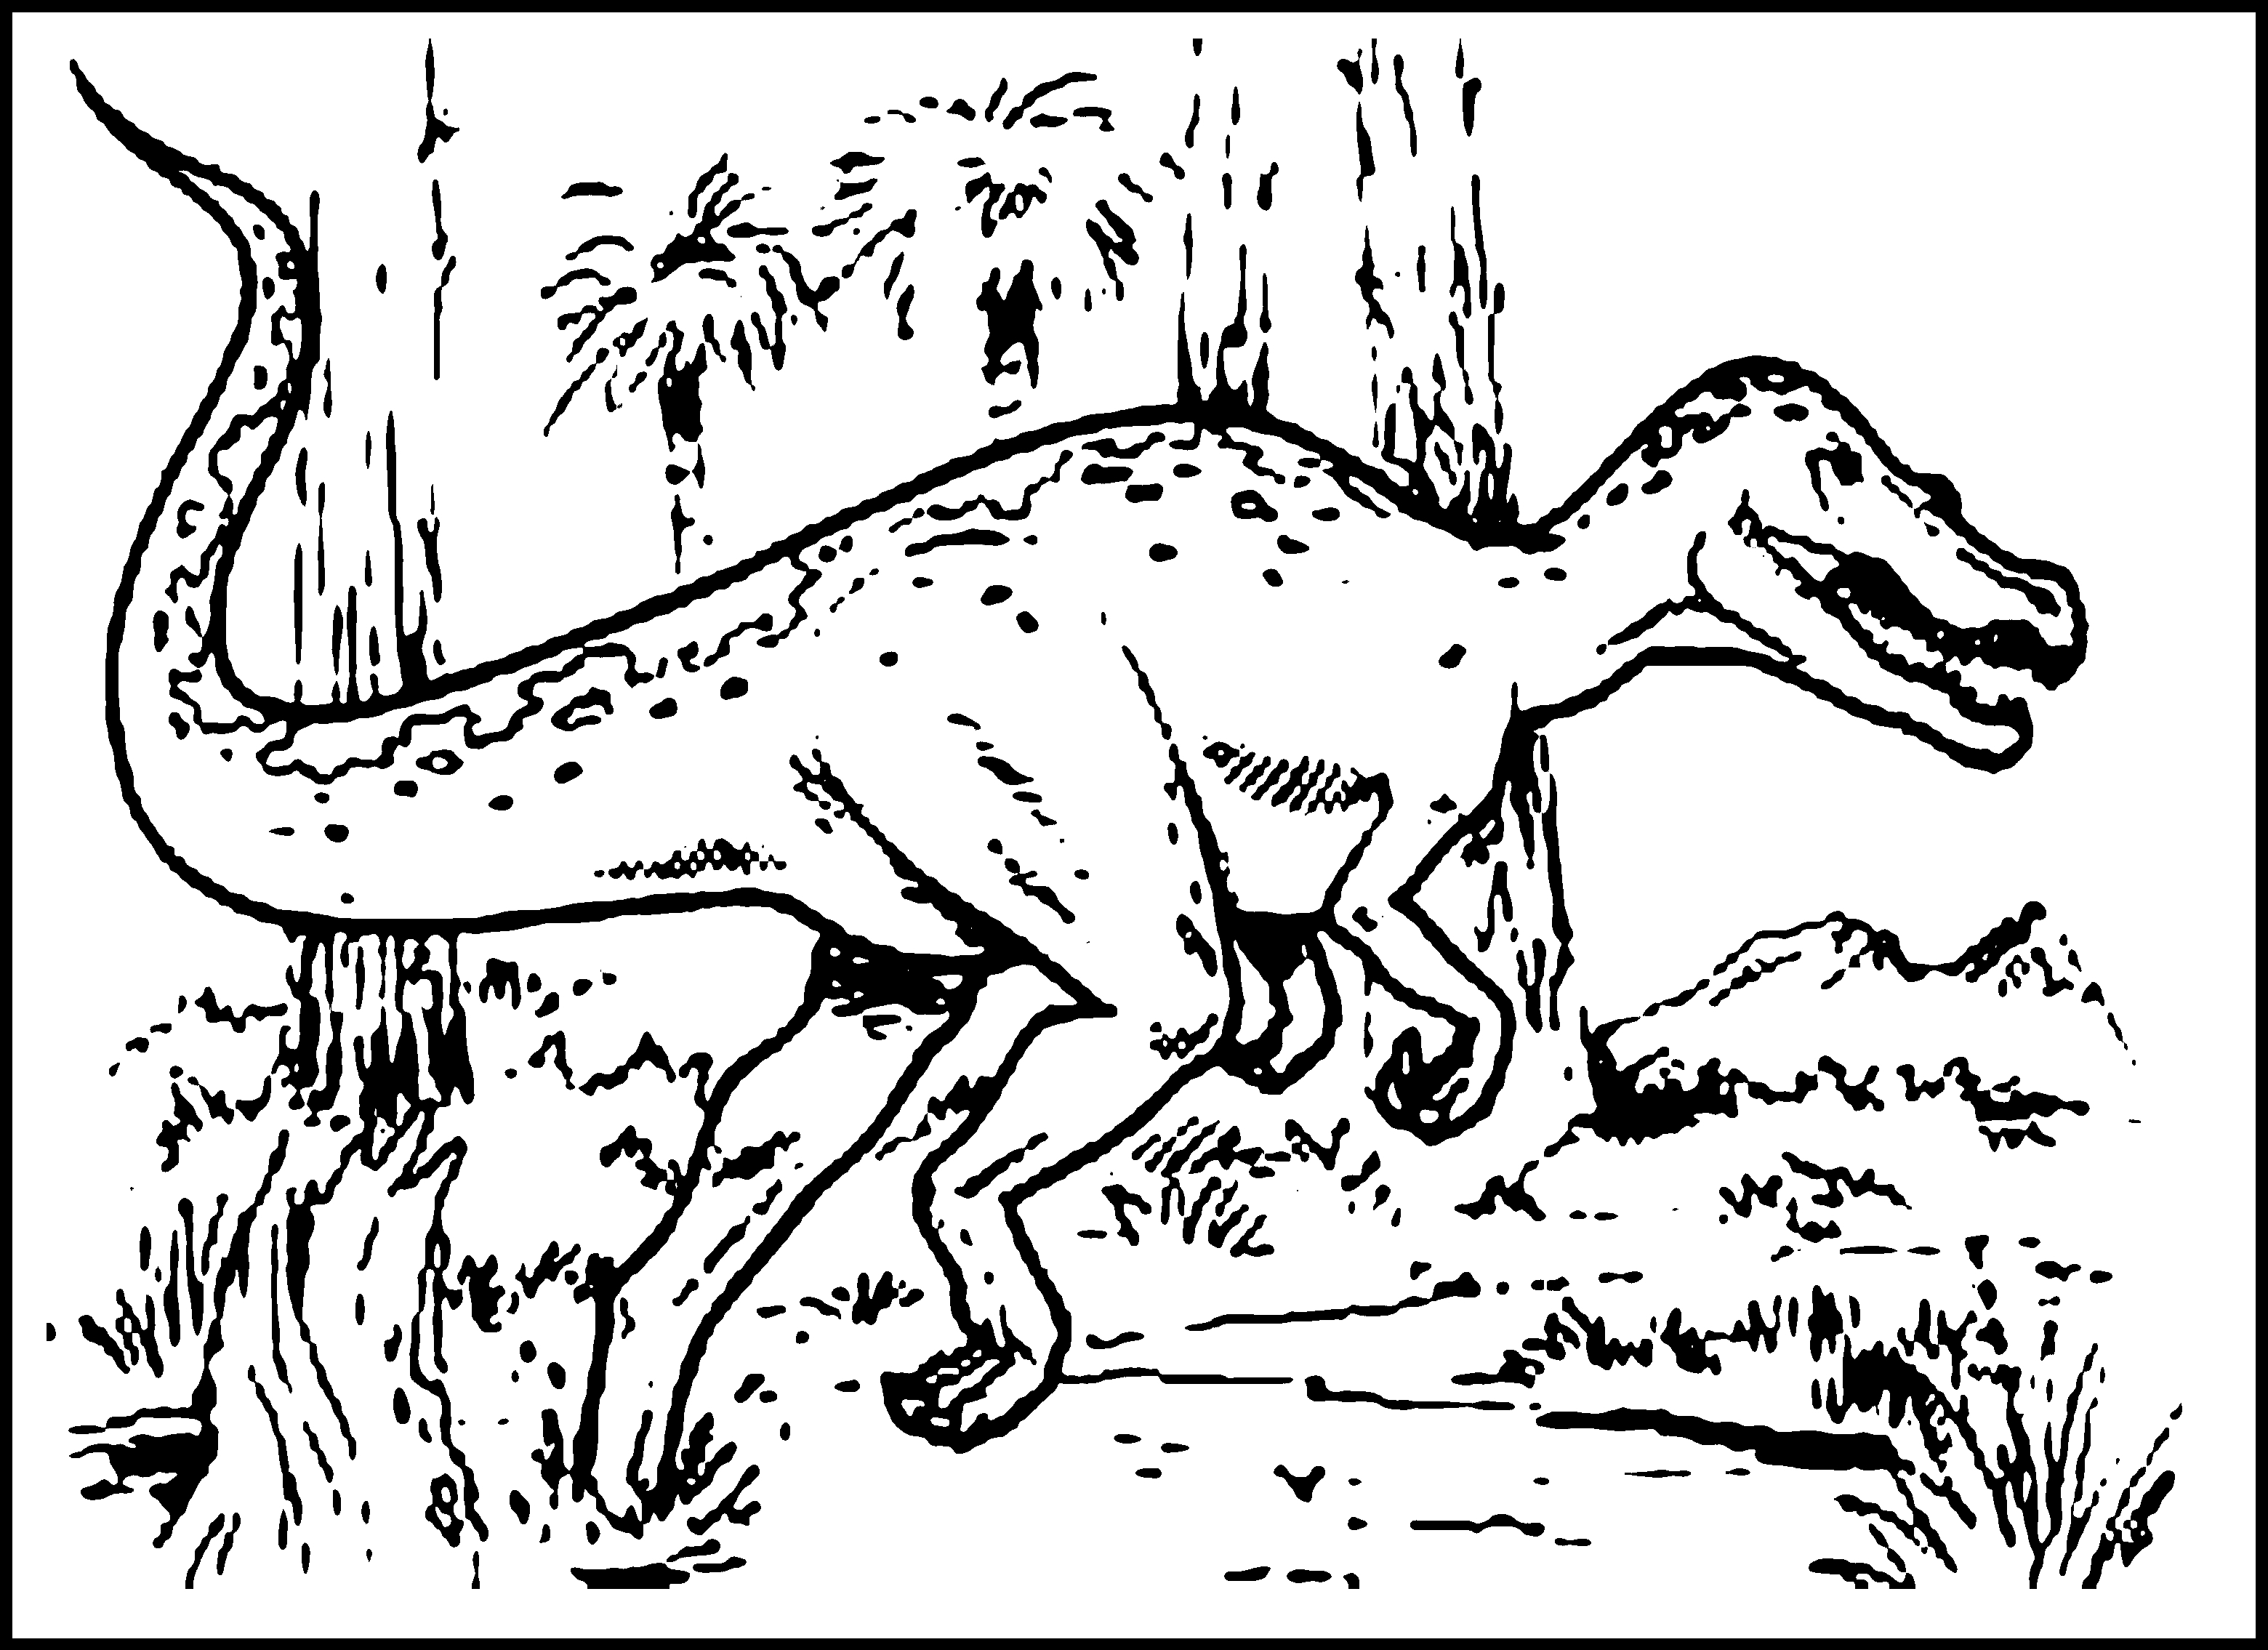 free printable coloring pages of dinosaurs dinosaur drawing pictures at getdrawings free download of dinosaurs pages printable free coloring